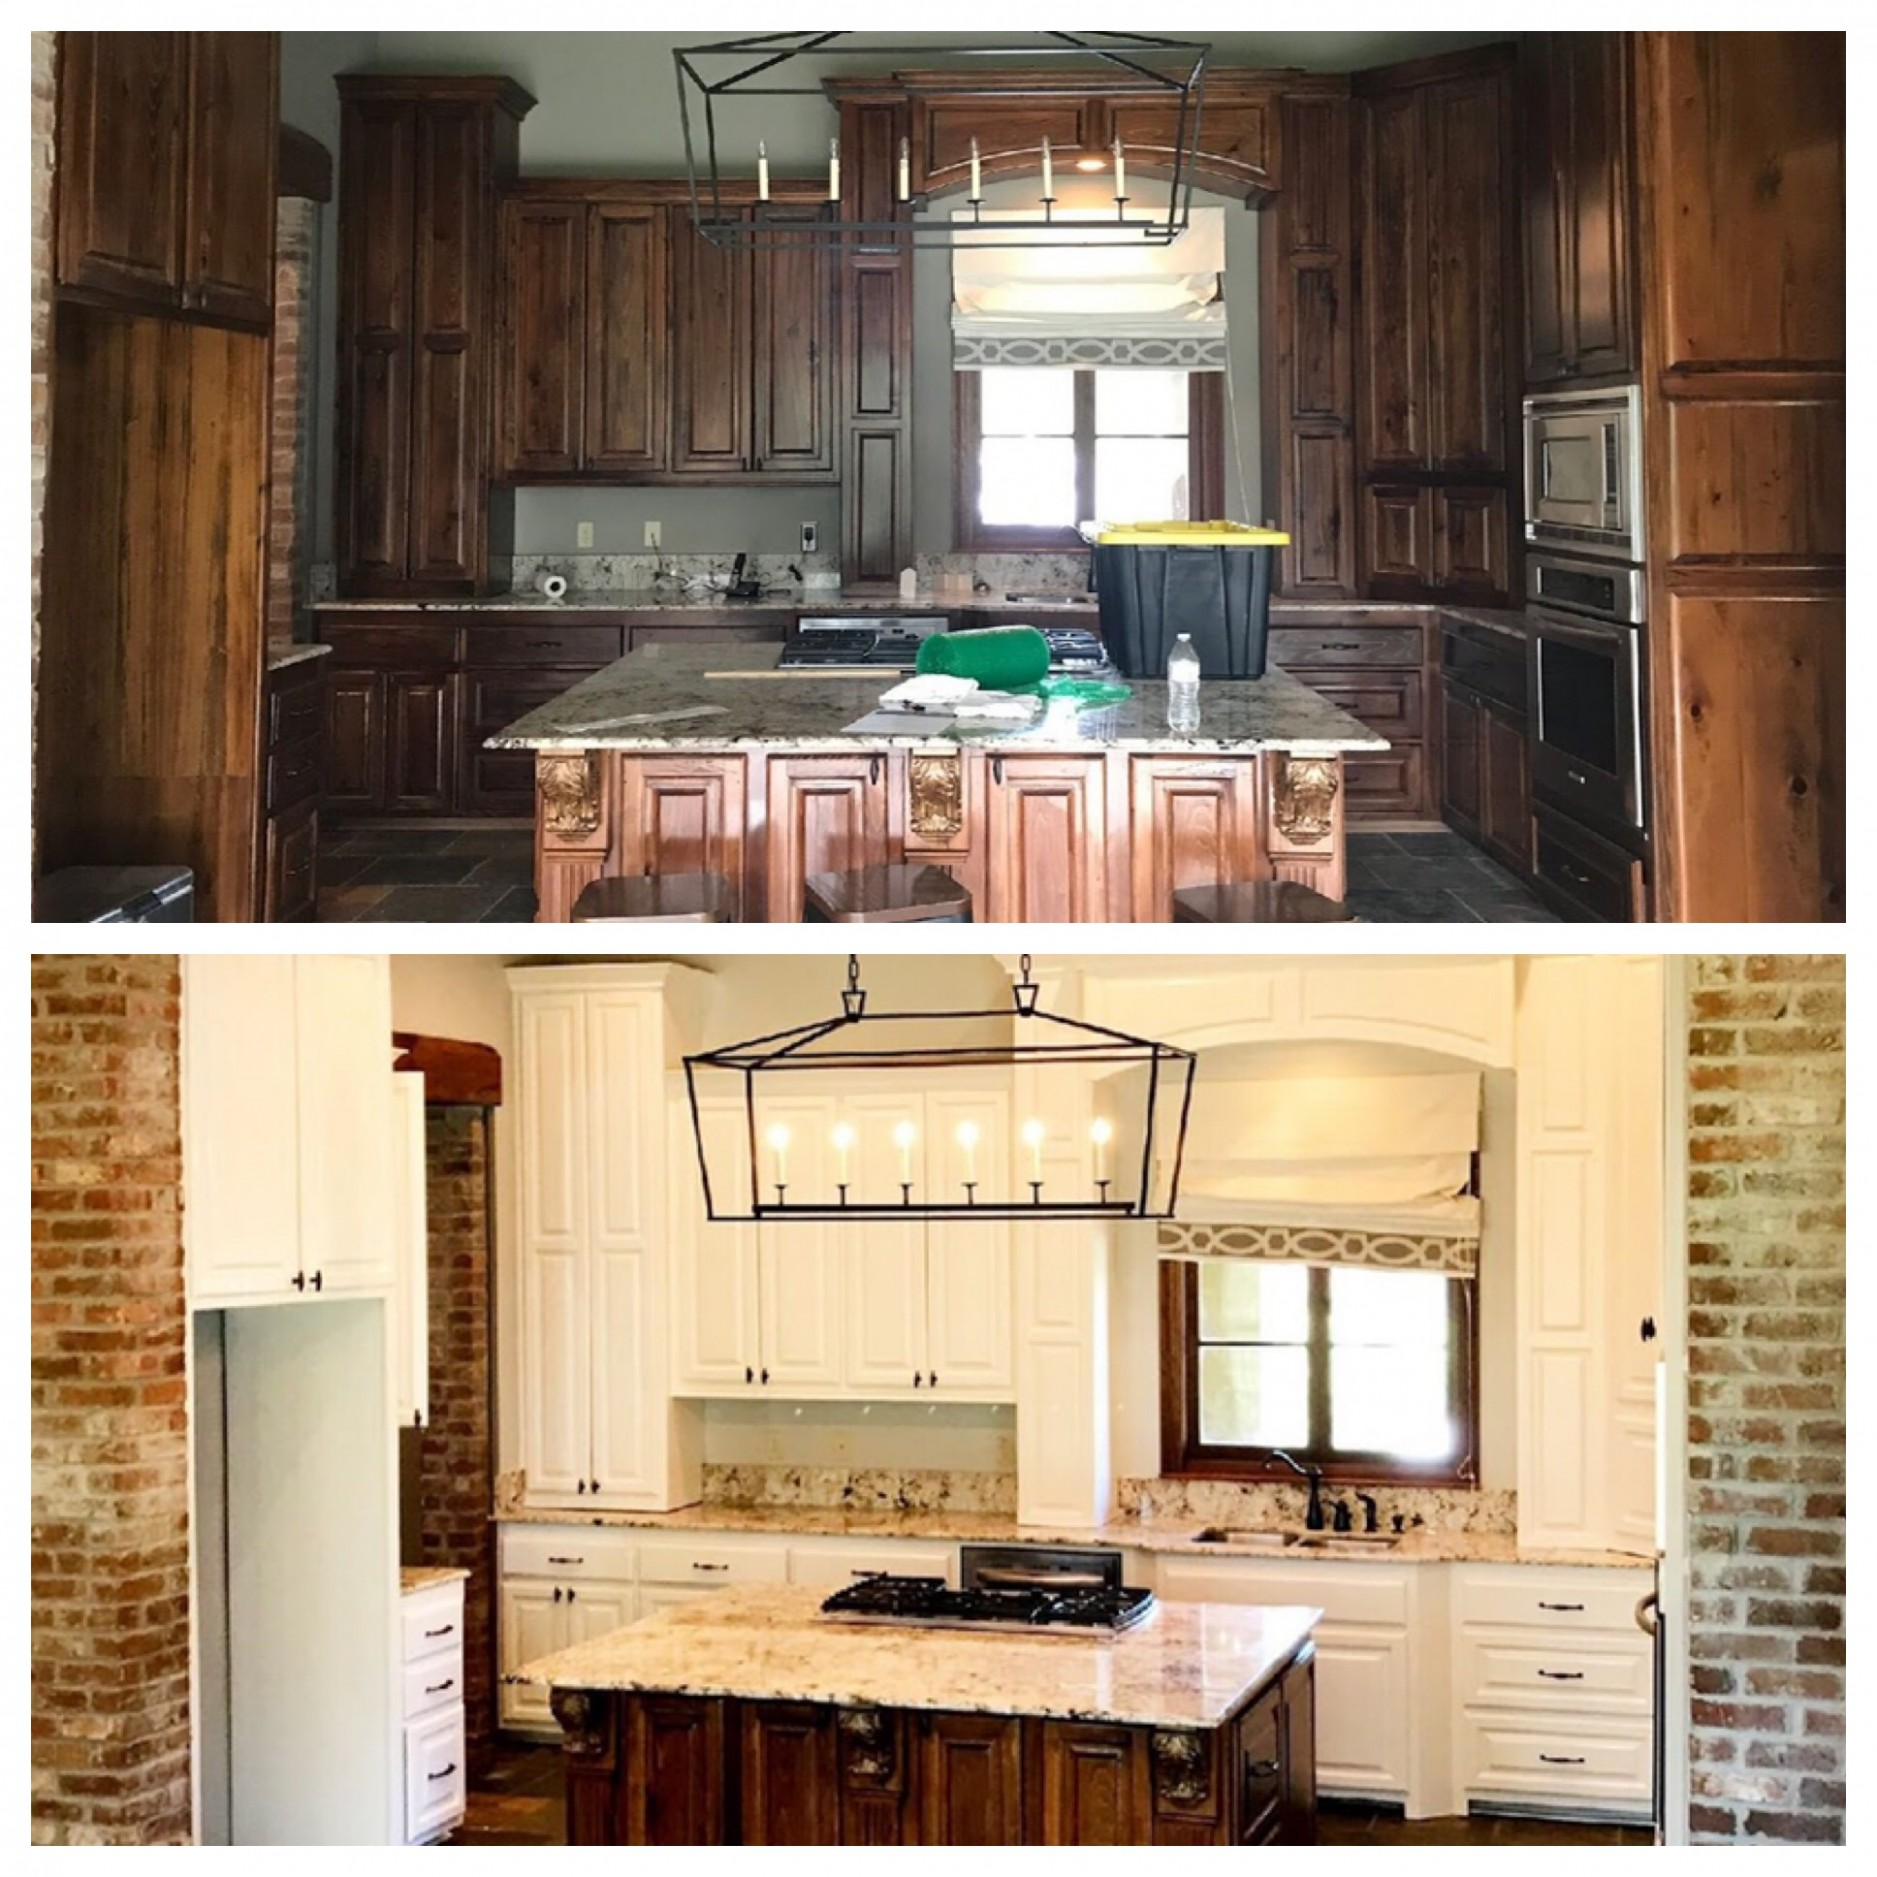 What does it cost to Paint Kitchen Cabinets? - How Much Does Refinishing Kitchen Cabinets Cost